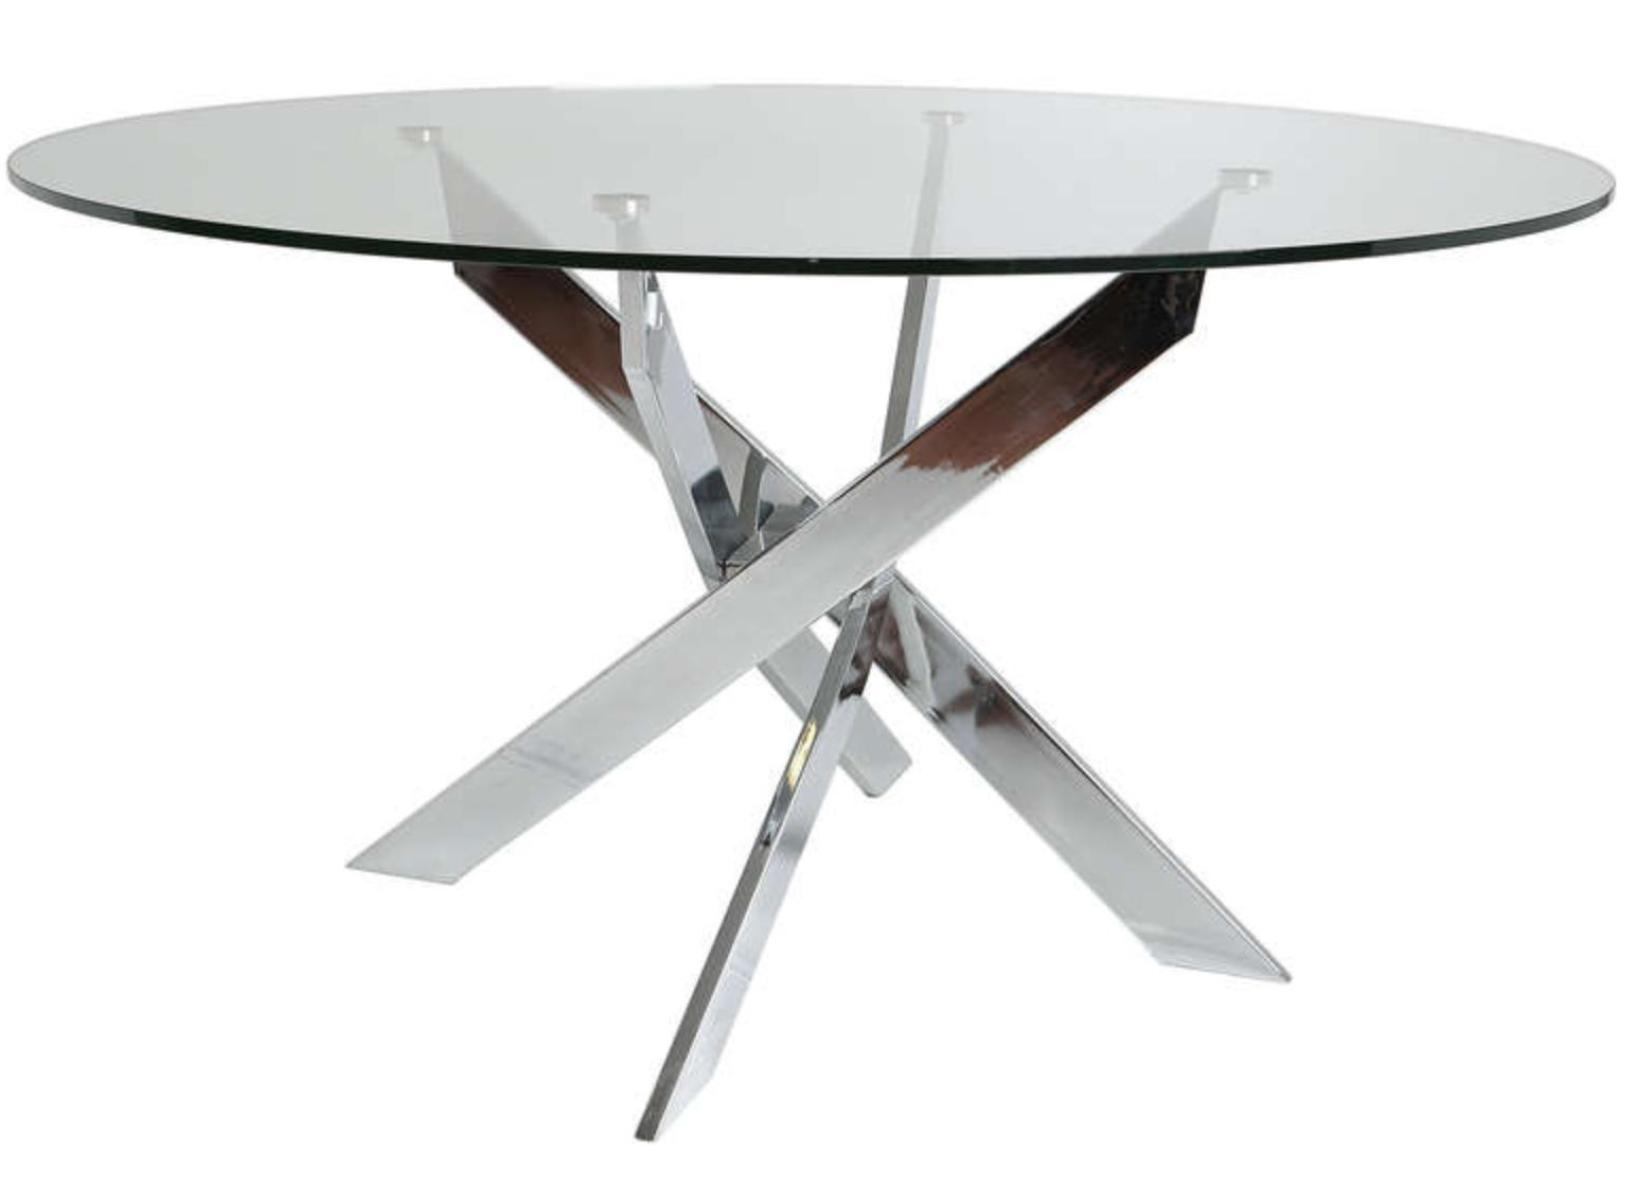 Table en verre ronde conceptions de maison - Table ronde en verre design ...